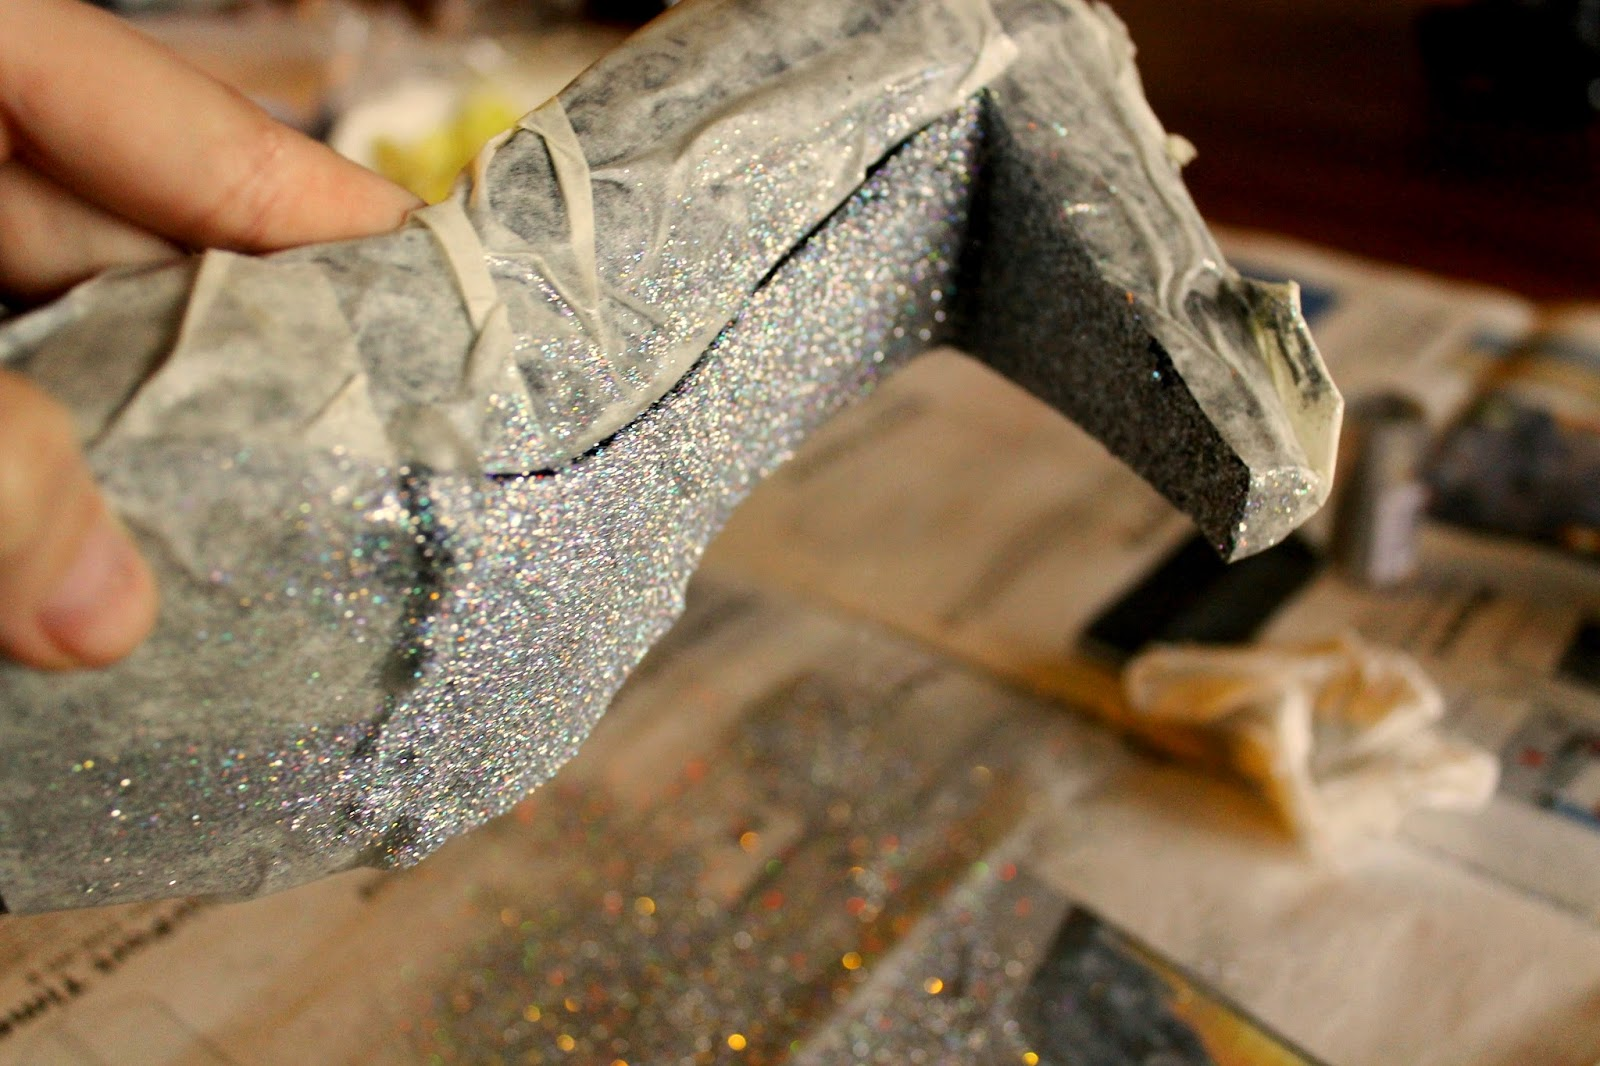 sparkling glitter high heels step 3. To see full instructions visit blog